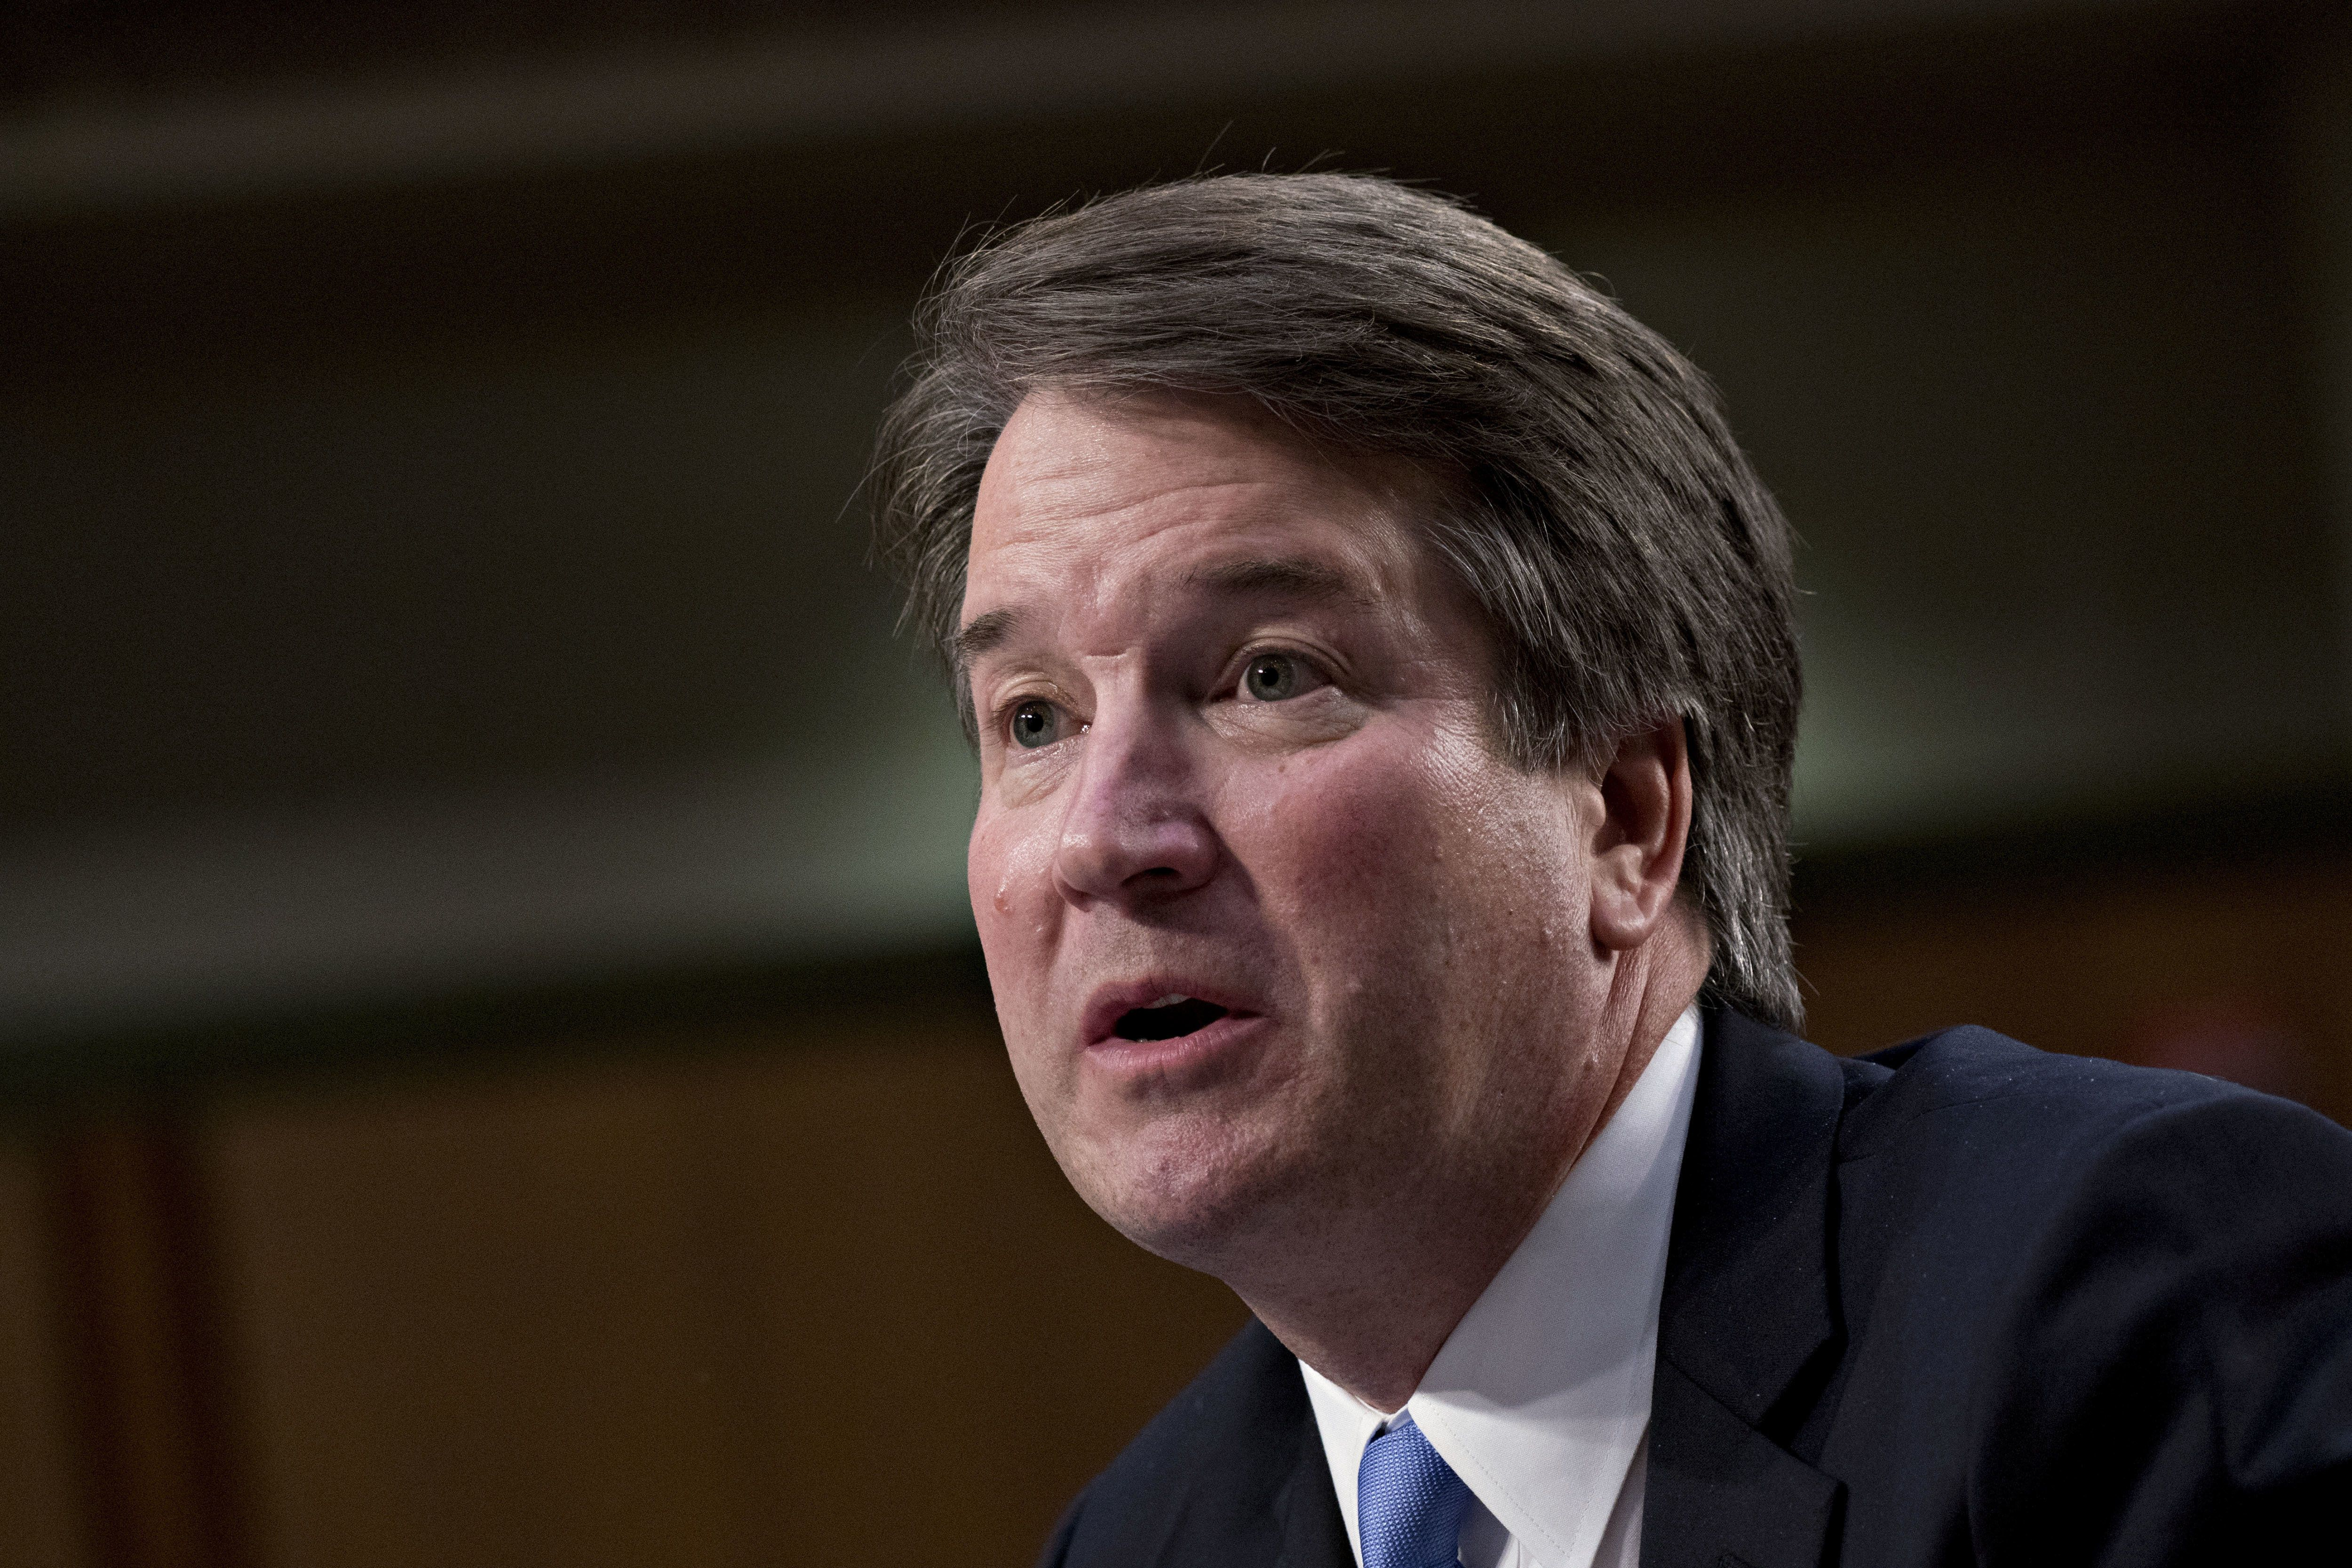 Kavanaugh, in Rare Interview, Denies Sex-Assault Allegations, Says He Won't Withdraw